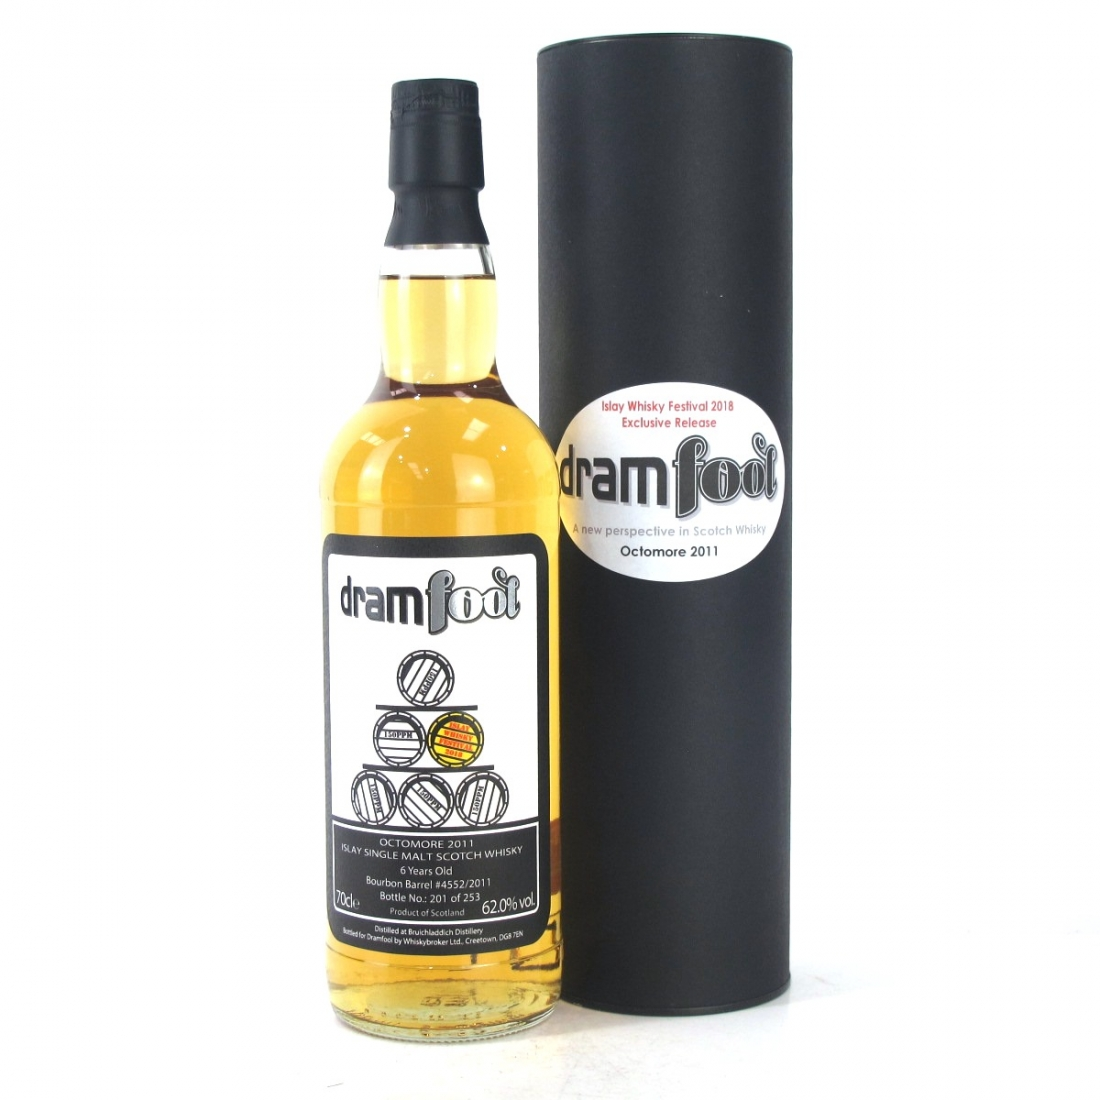 Octomore 2007 Dramfool 6 Year Old